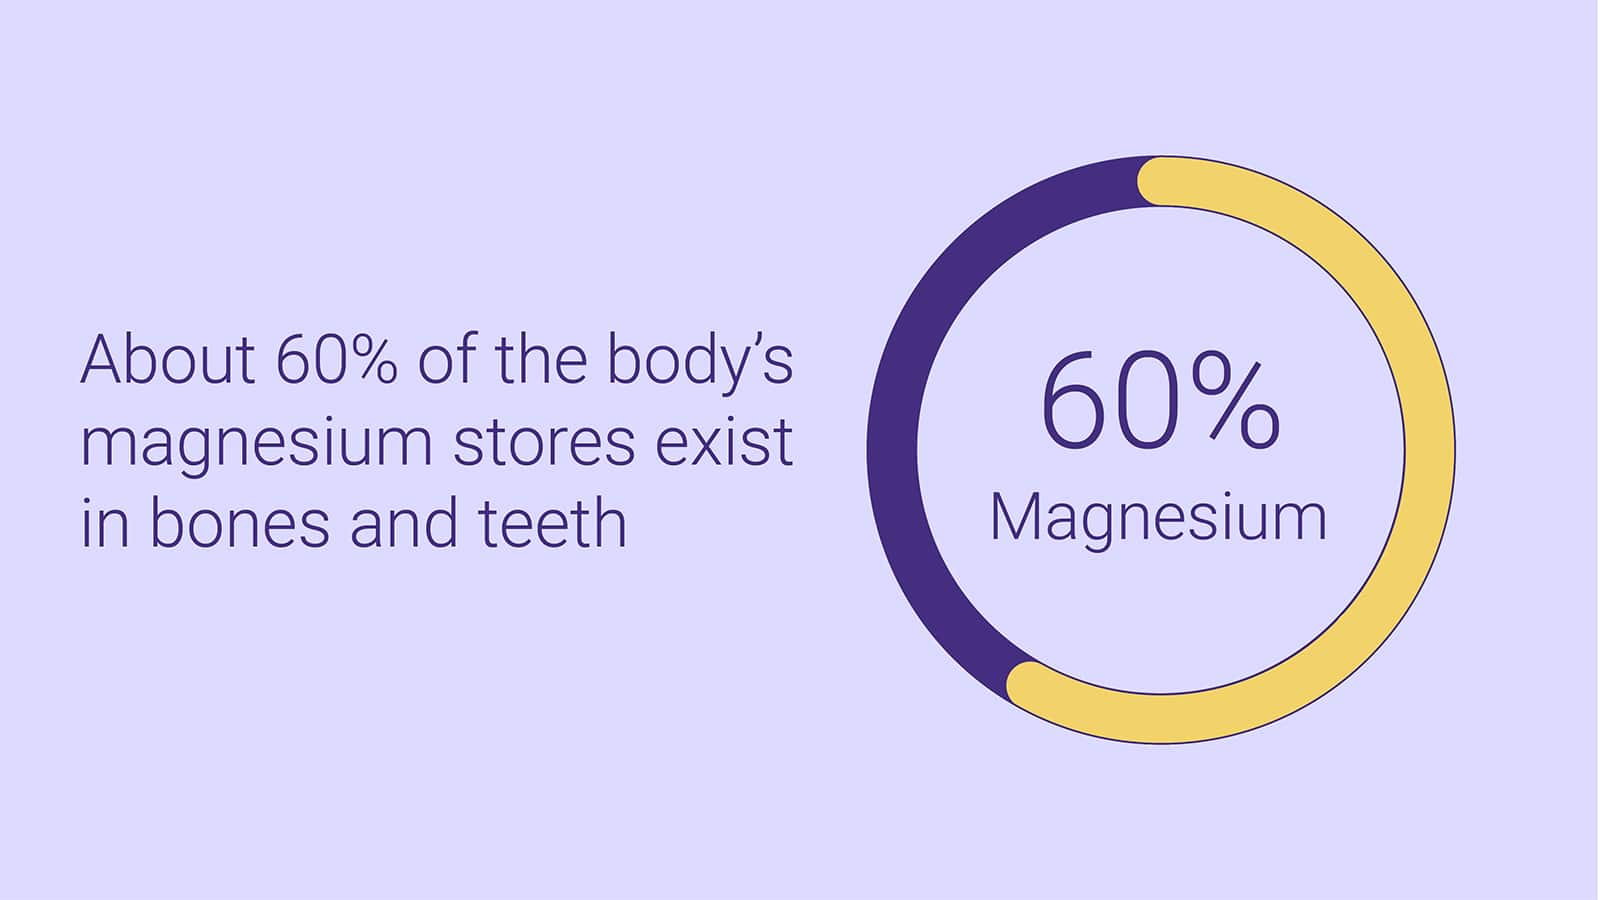 magnesium is found in bones and teeth